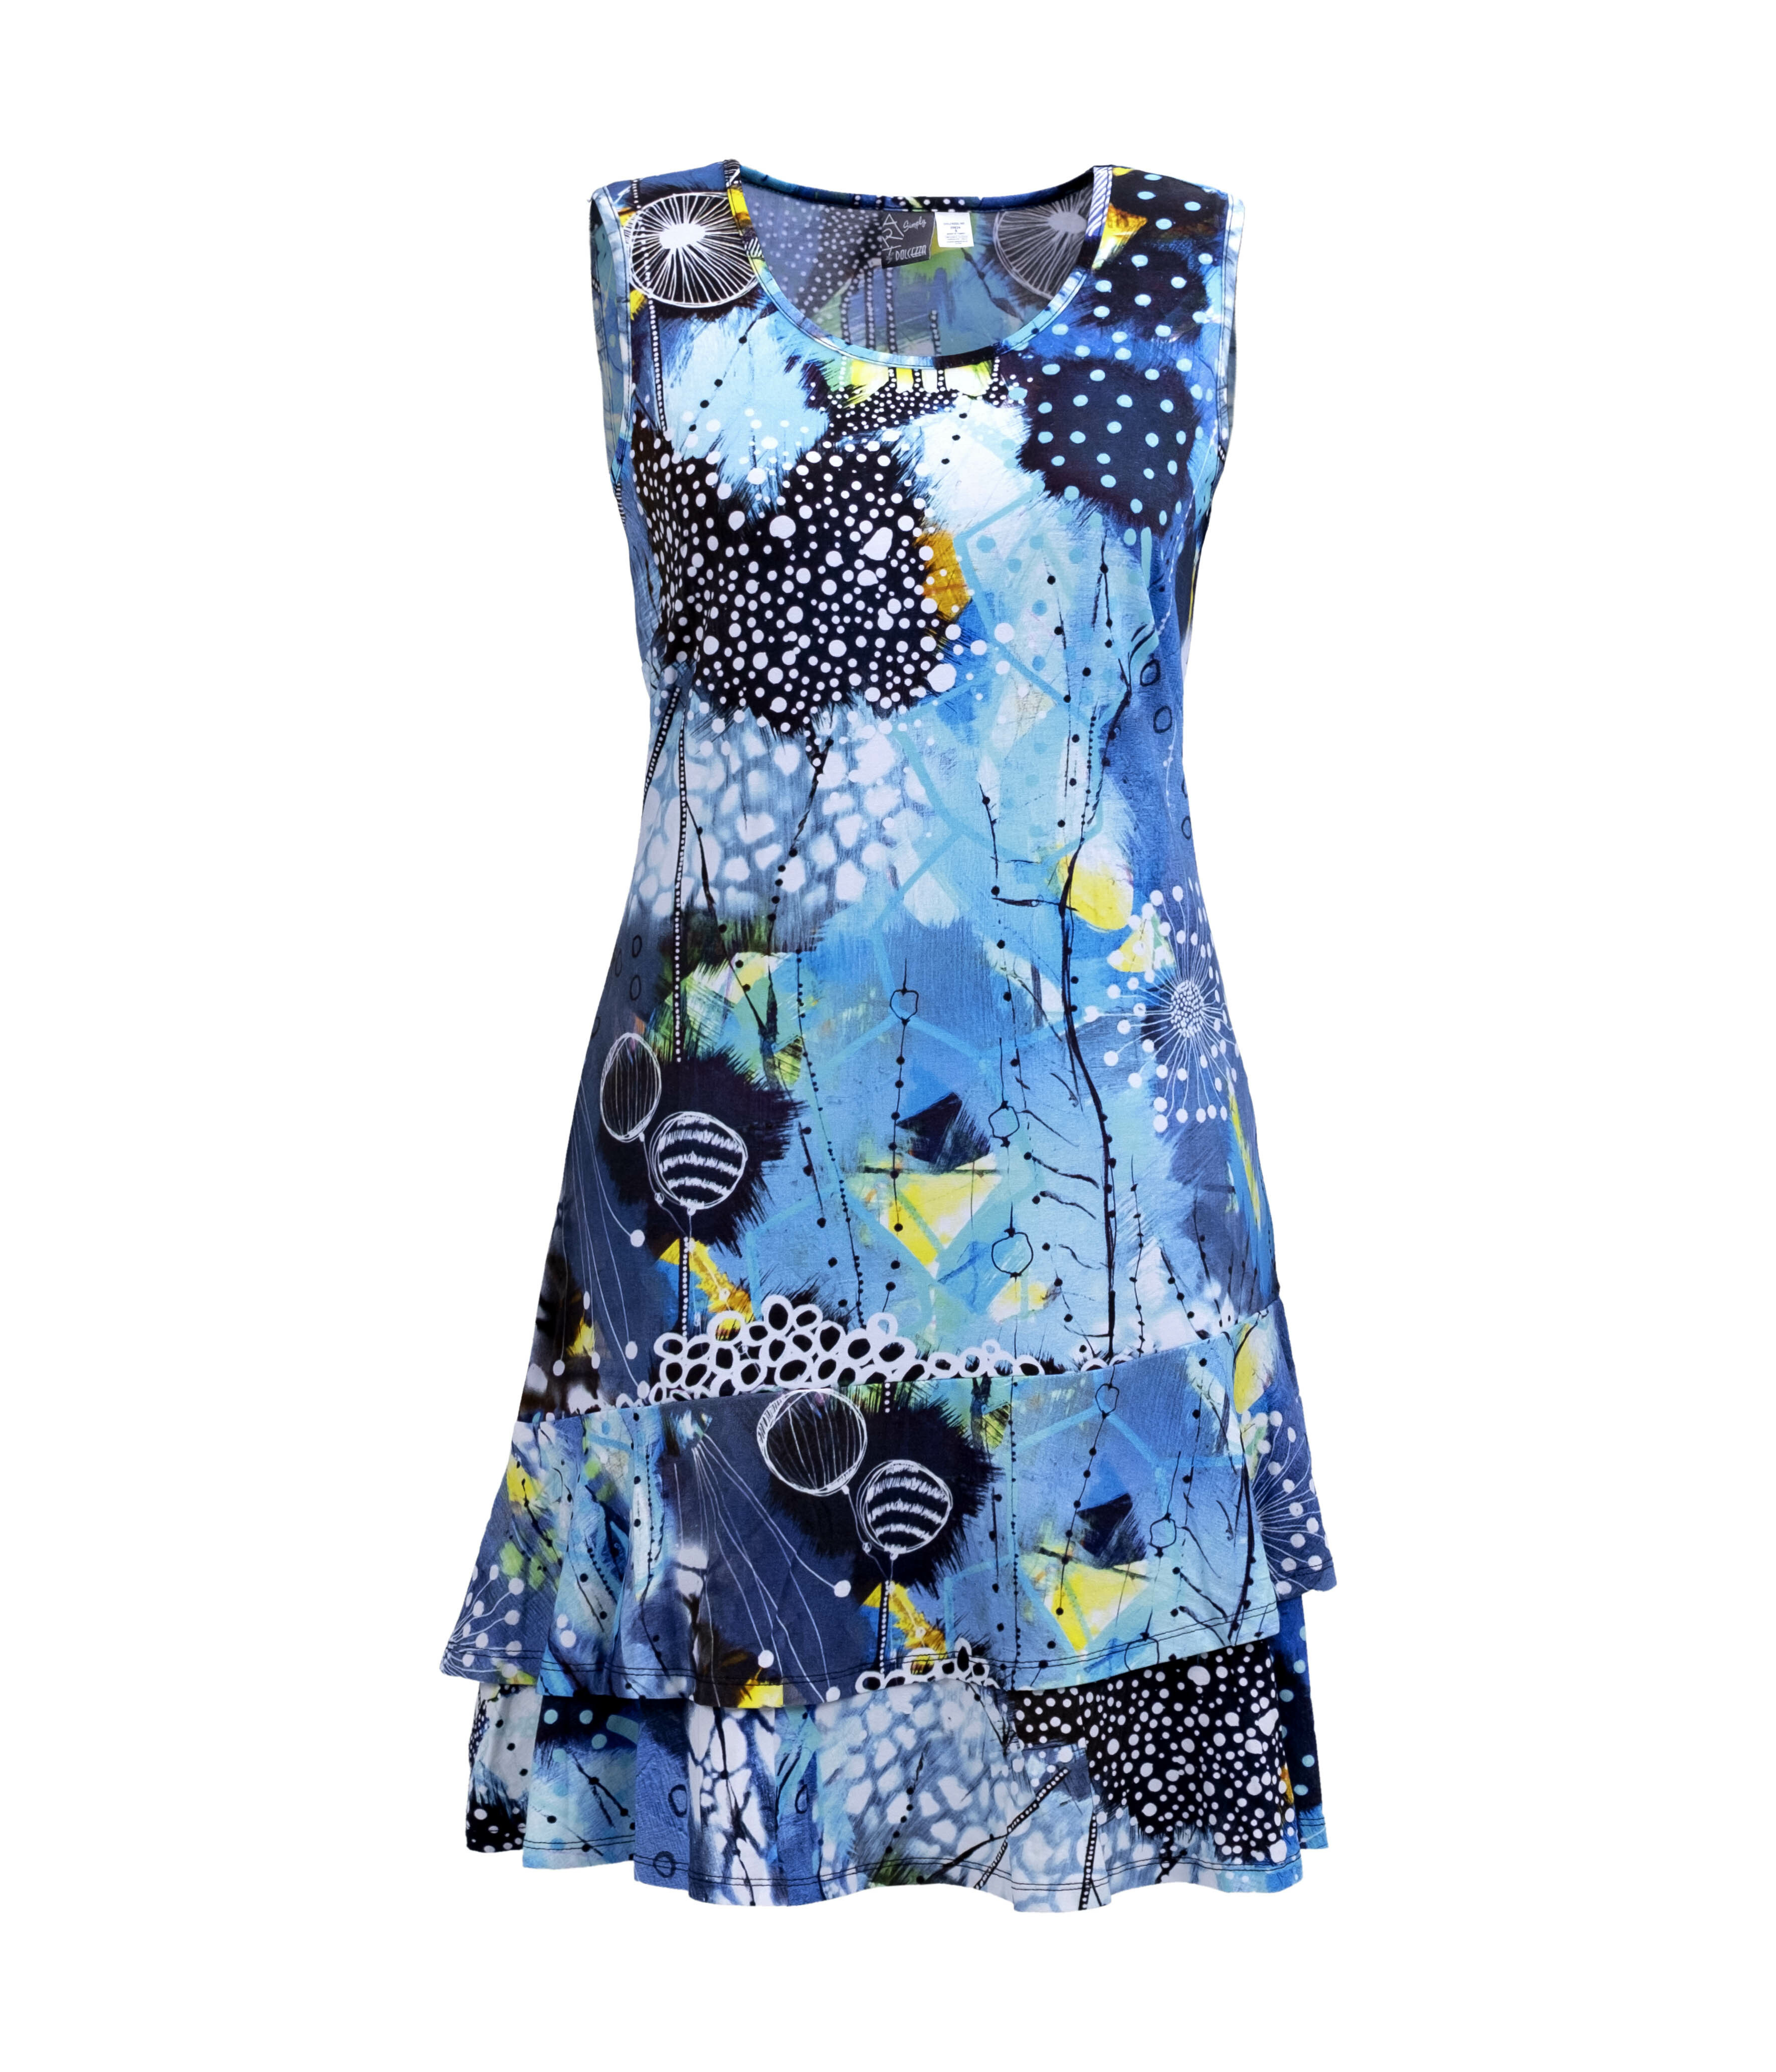 Simply Art Dolcezza: The Love of Blue Happiness Abstract Art Ruffled Dress